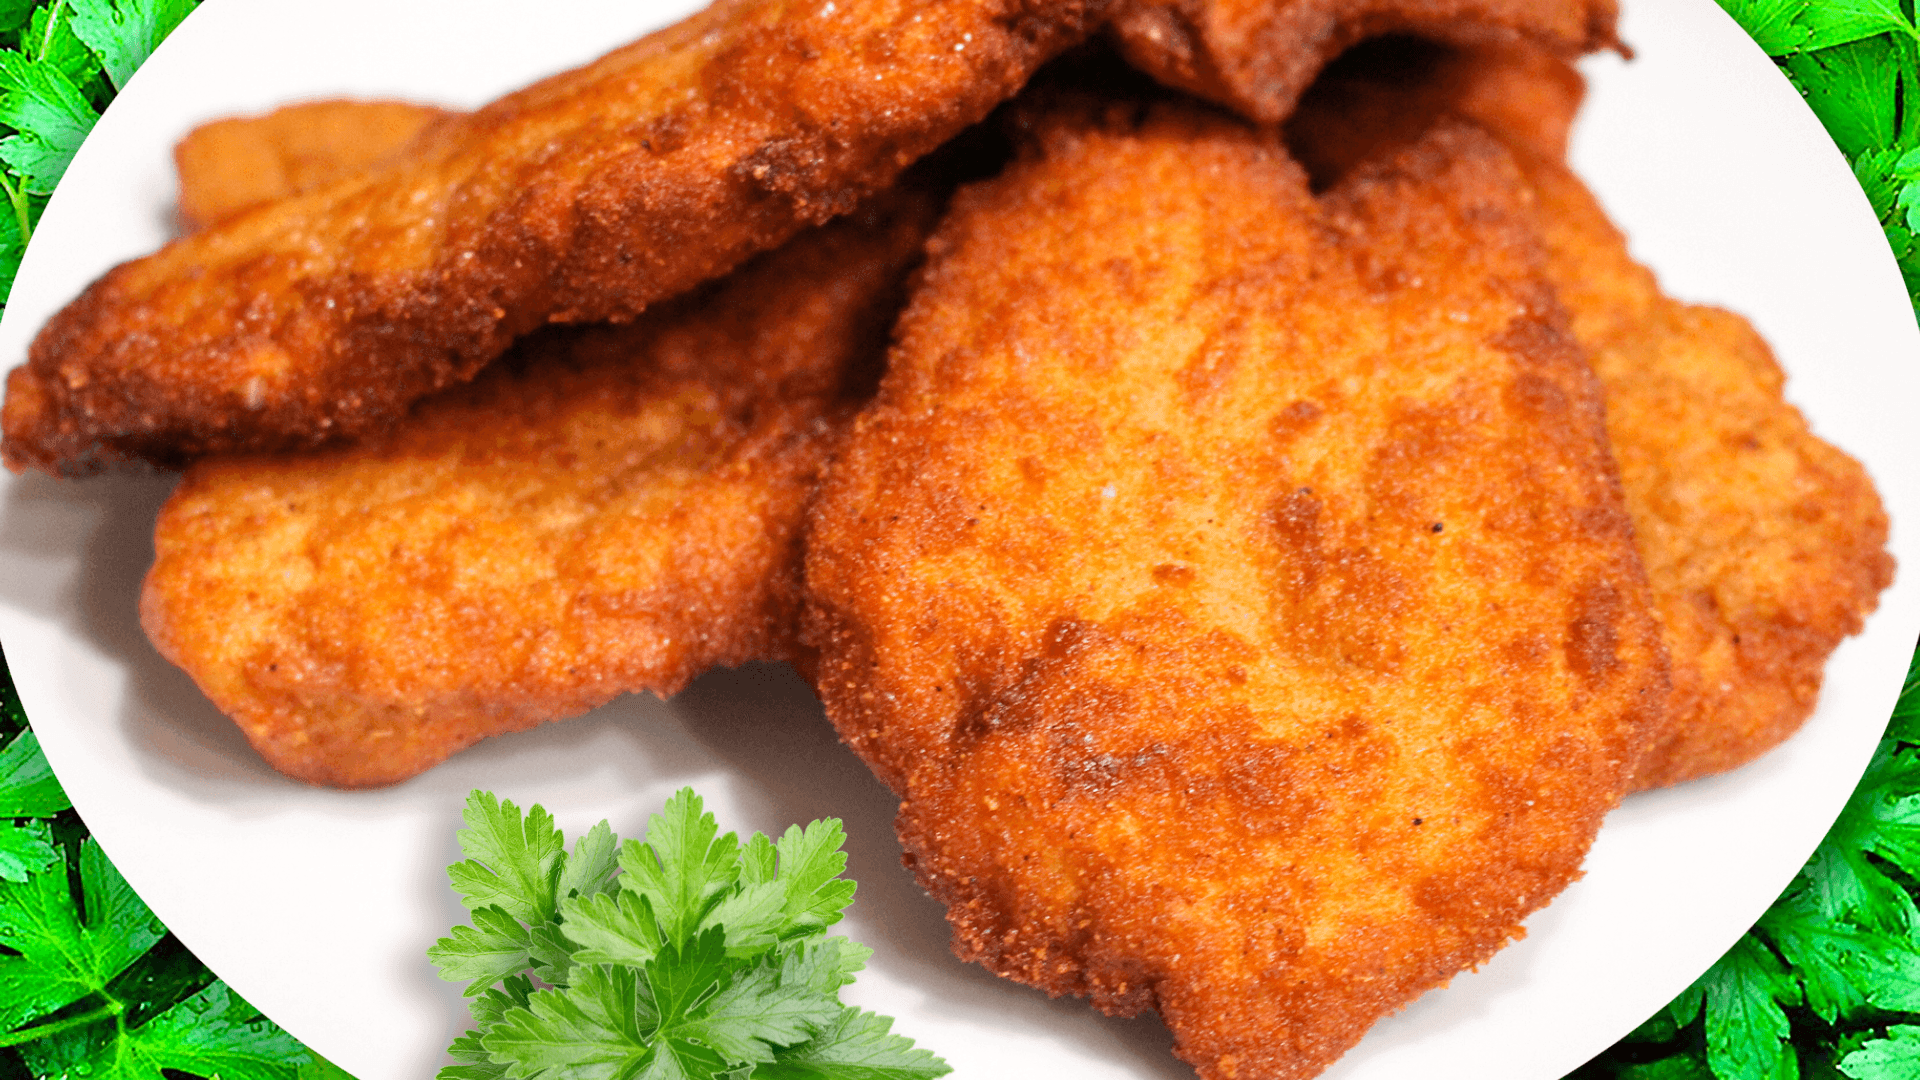 How To Make Chicken Breast Schnitzel Basic Chicken Schnitzel Recipe In 8 Steps